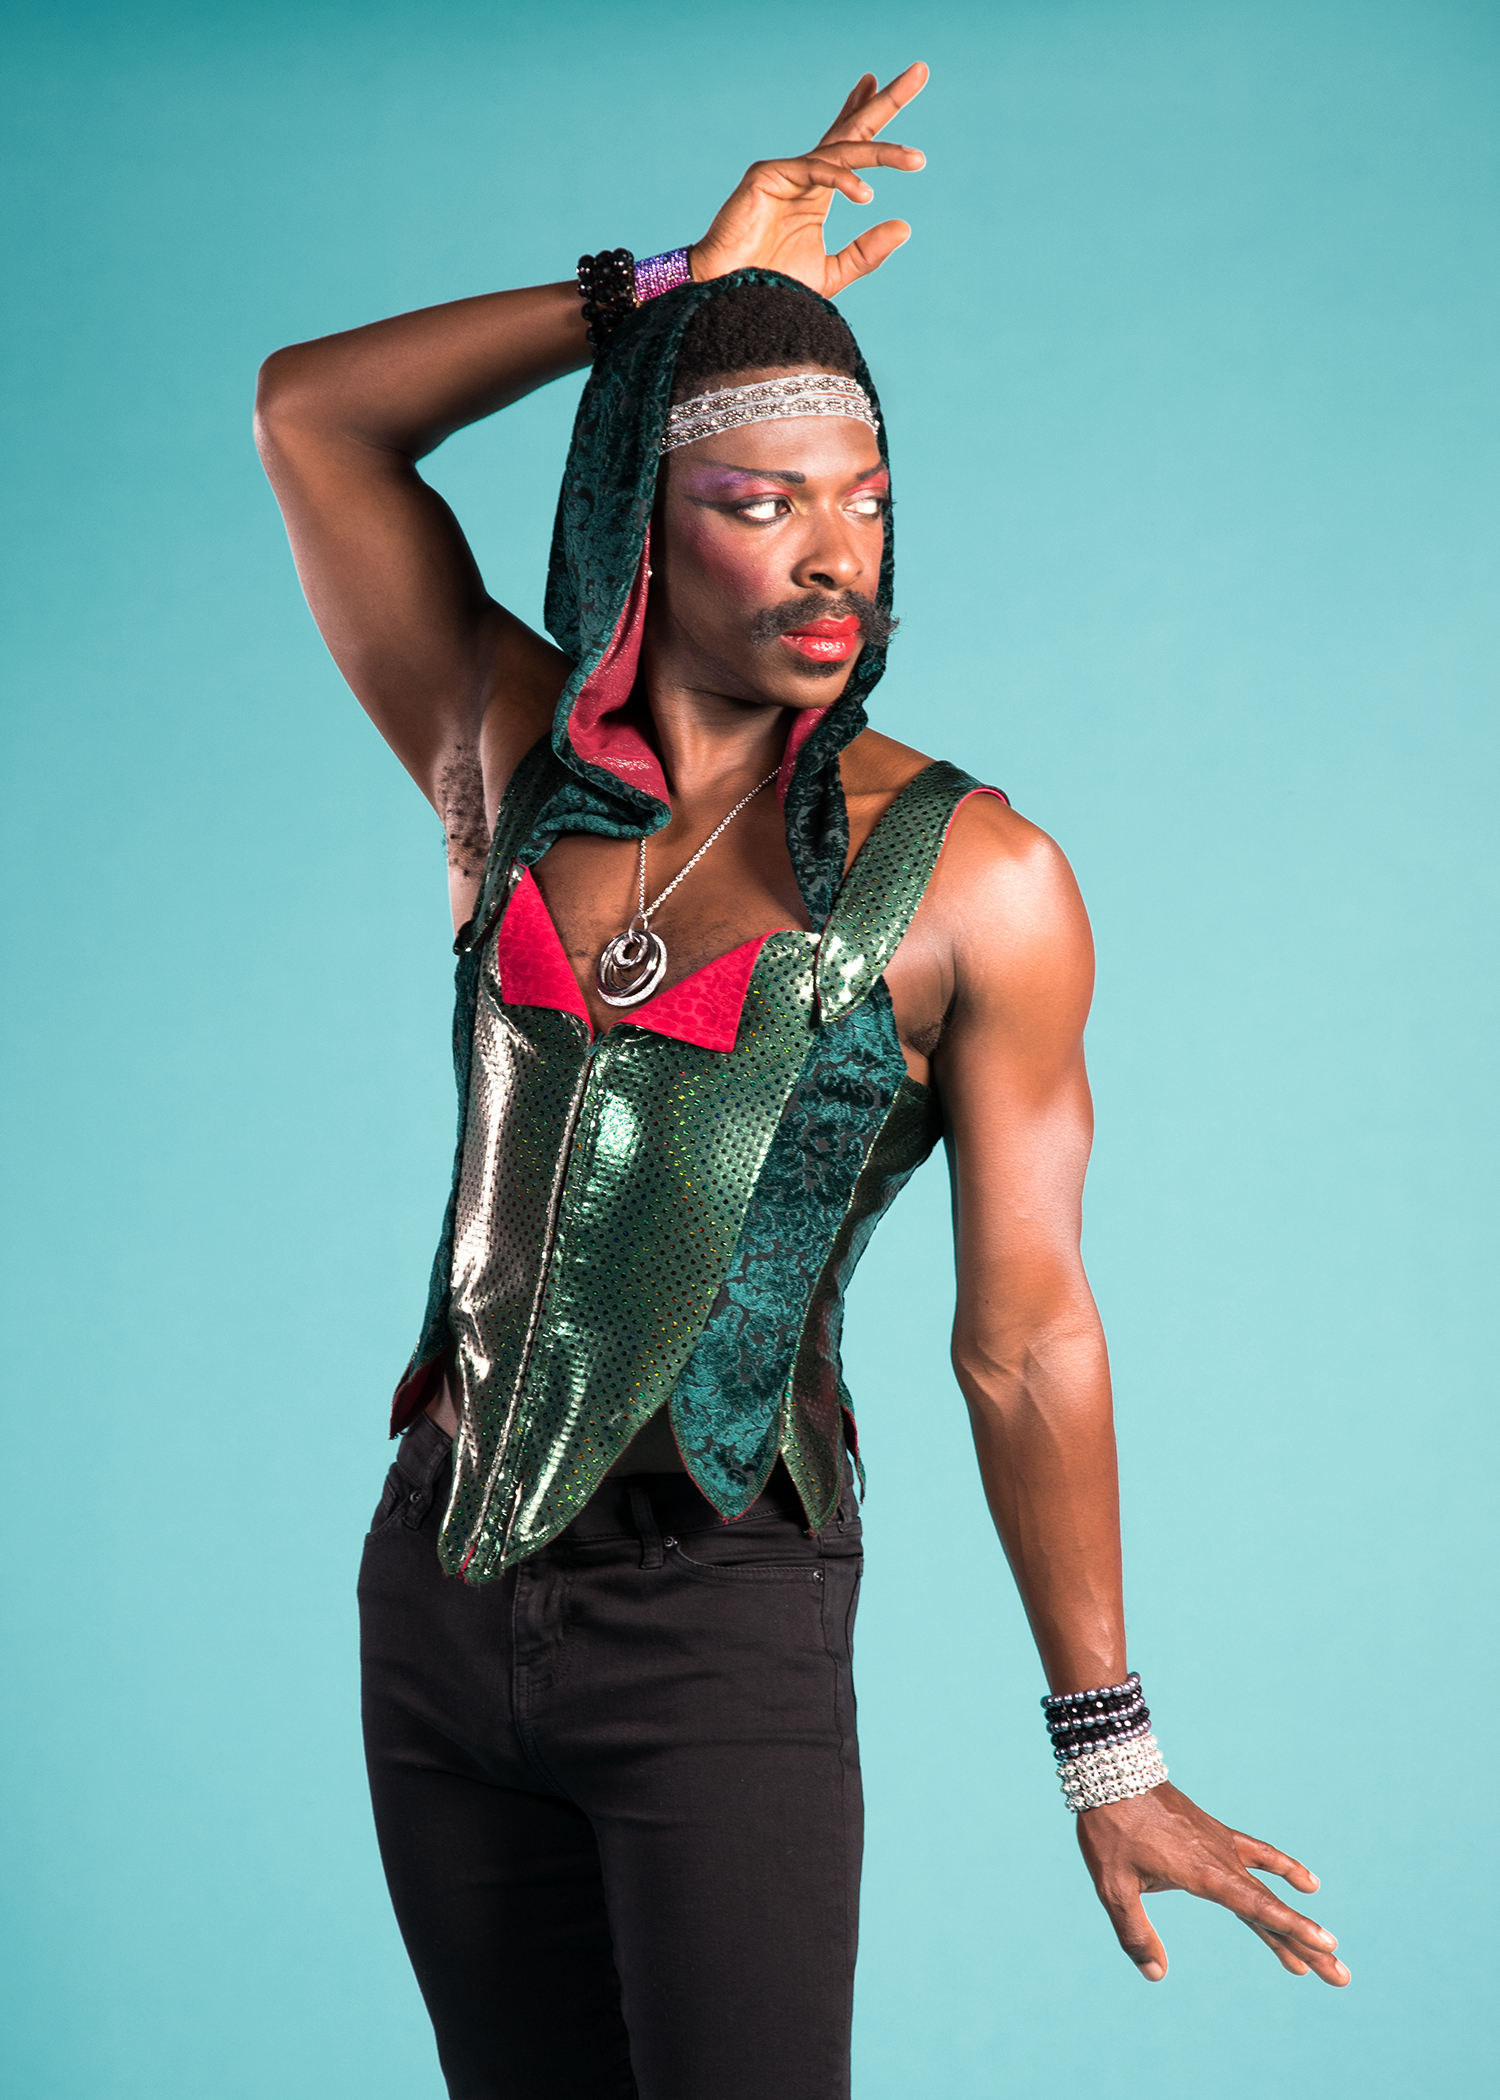 Pictured: Rotimi Agbabiaka*. Photo by Lois Tema. *Appears through the courtesy of Actors' Equity Association, the Union of Professional Actors and Stage Managers in the United States.